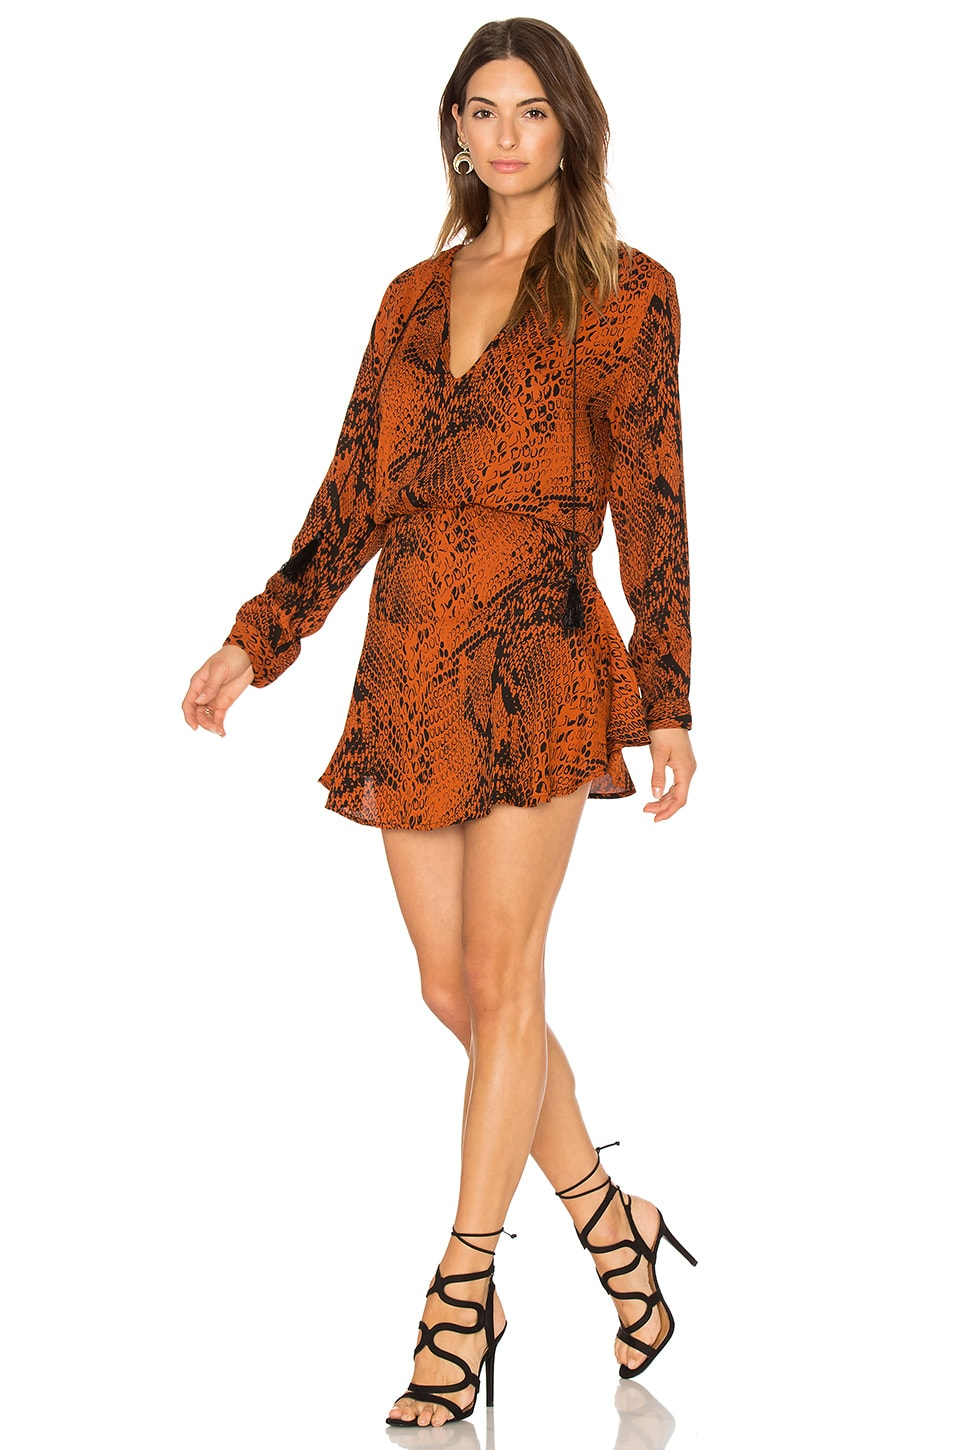 Karina Grimaldi Pilar Print Mini Dress in Rust Snake